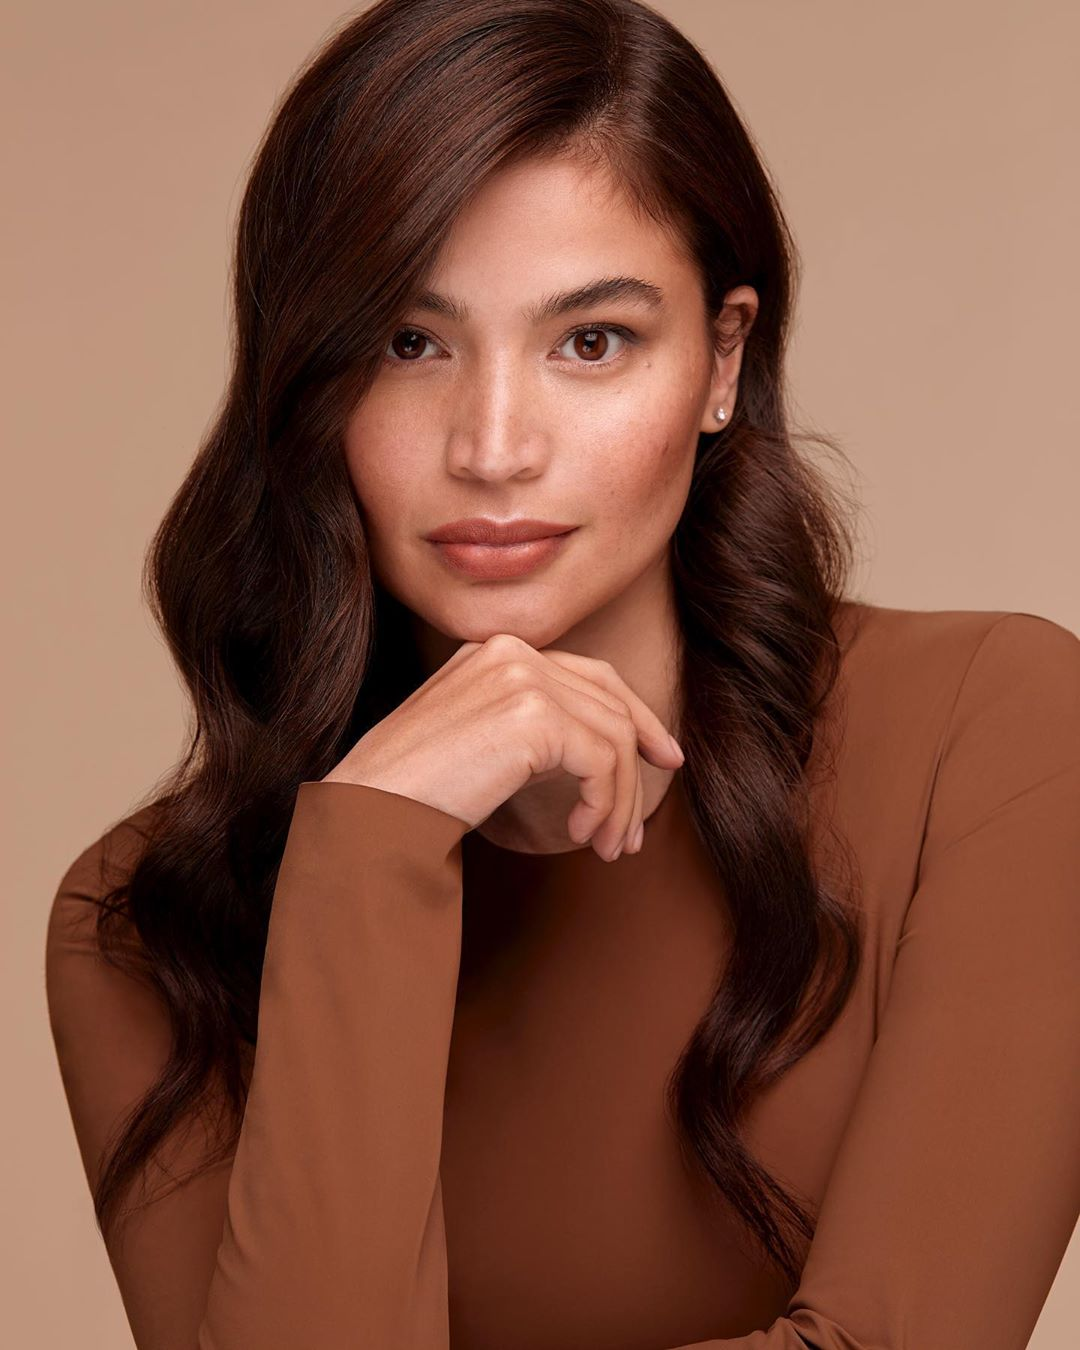 Anne is wearing the Illuminating Skin Tint SPF 30 in Butterscotch, Loose Powder in Light, Brow Mascara in Taupe, Priming + Mattifying Stick, Multitasking Color Stick in Mimosa (eyes and cheeks), and Cocoa (as contour), Lip Switch in Espresso